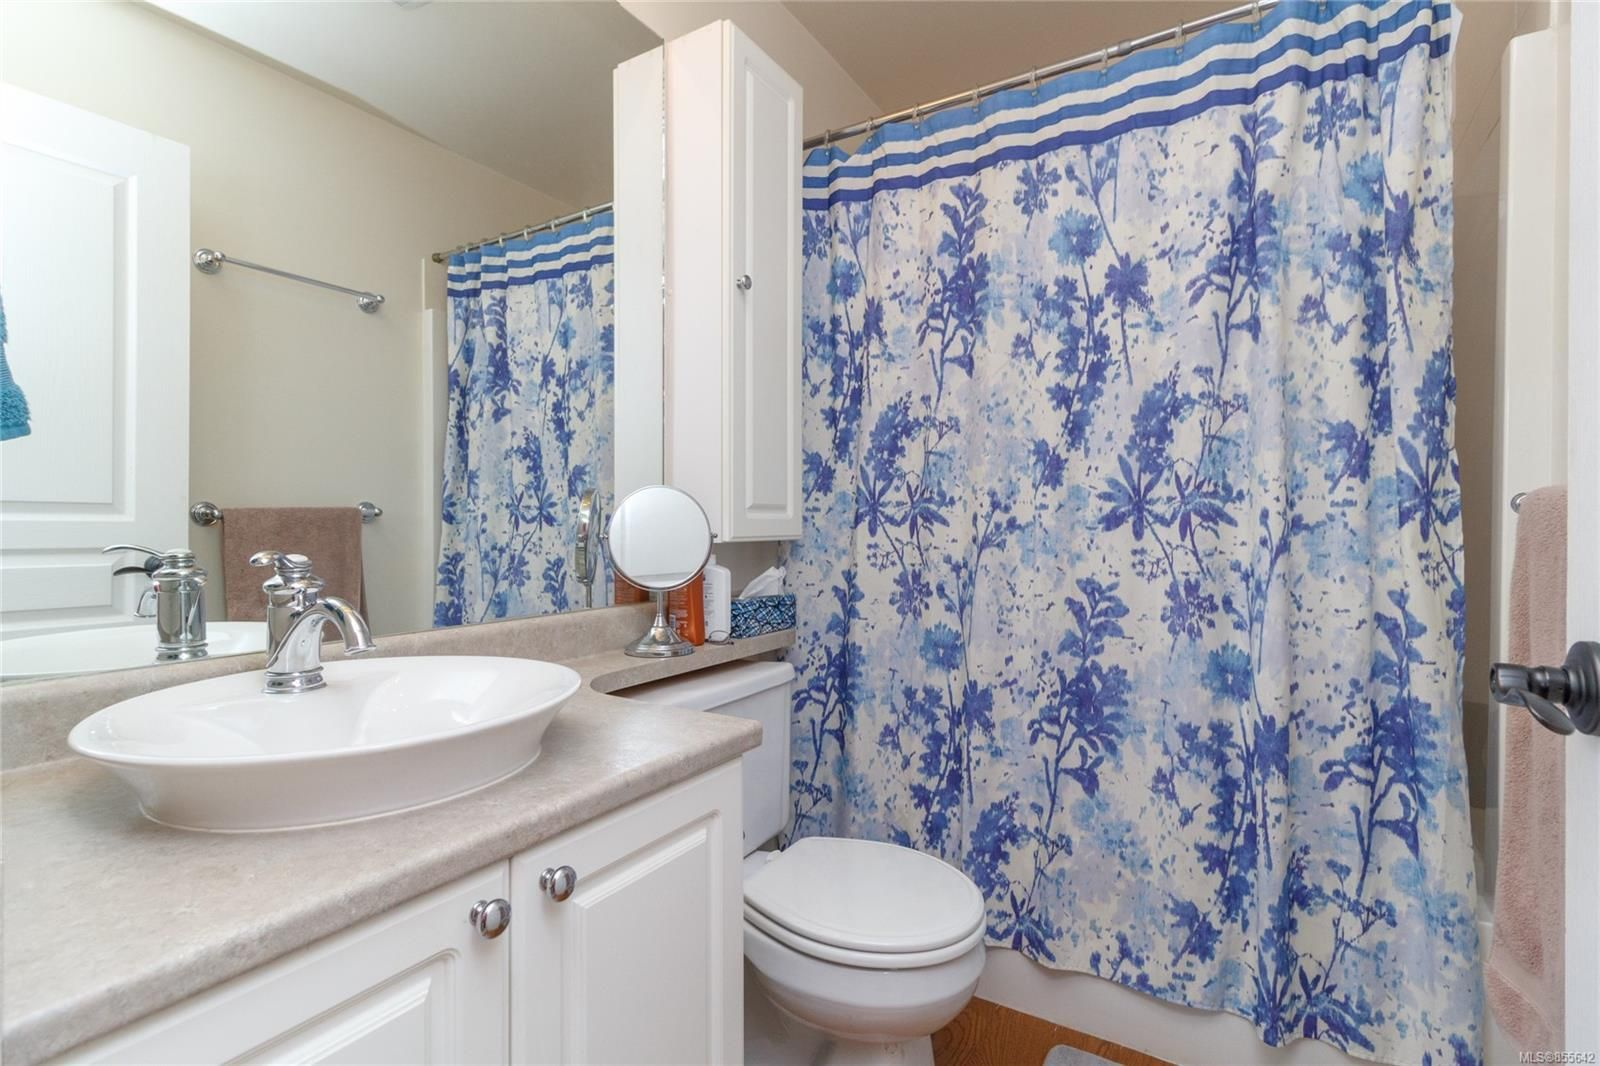 Photo 15: Photos: 52 14 Erskine Lane in : VR Hospital Row/Townhouse for sale (View Royal)  : MLS®# 855642